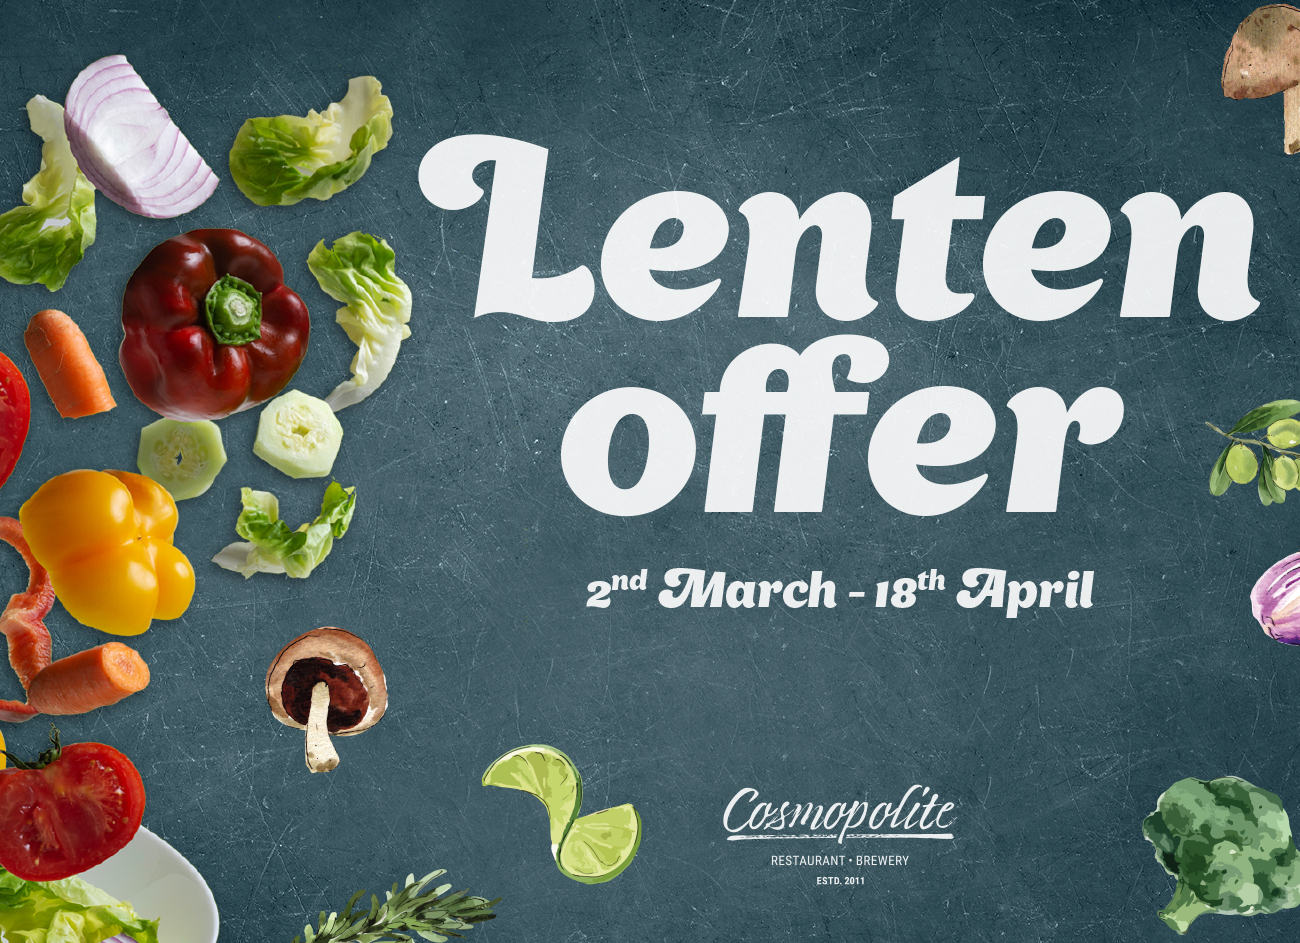 Introducing the Lenten offer at our restaurant